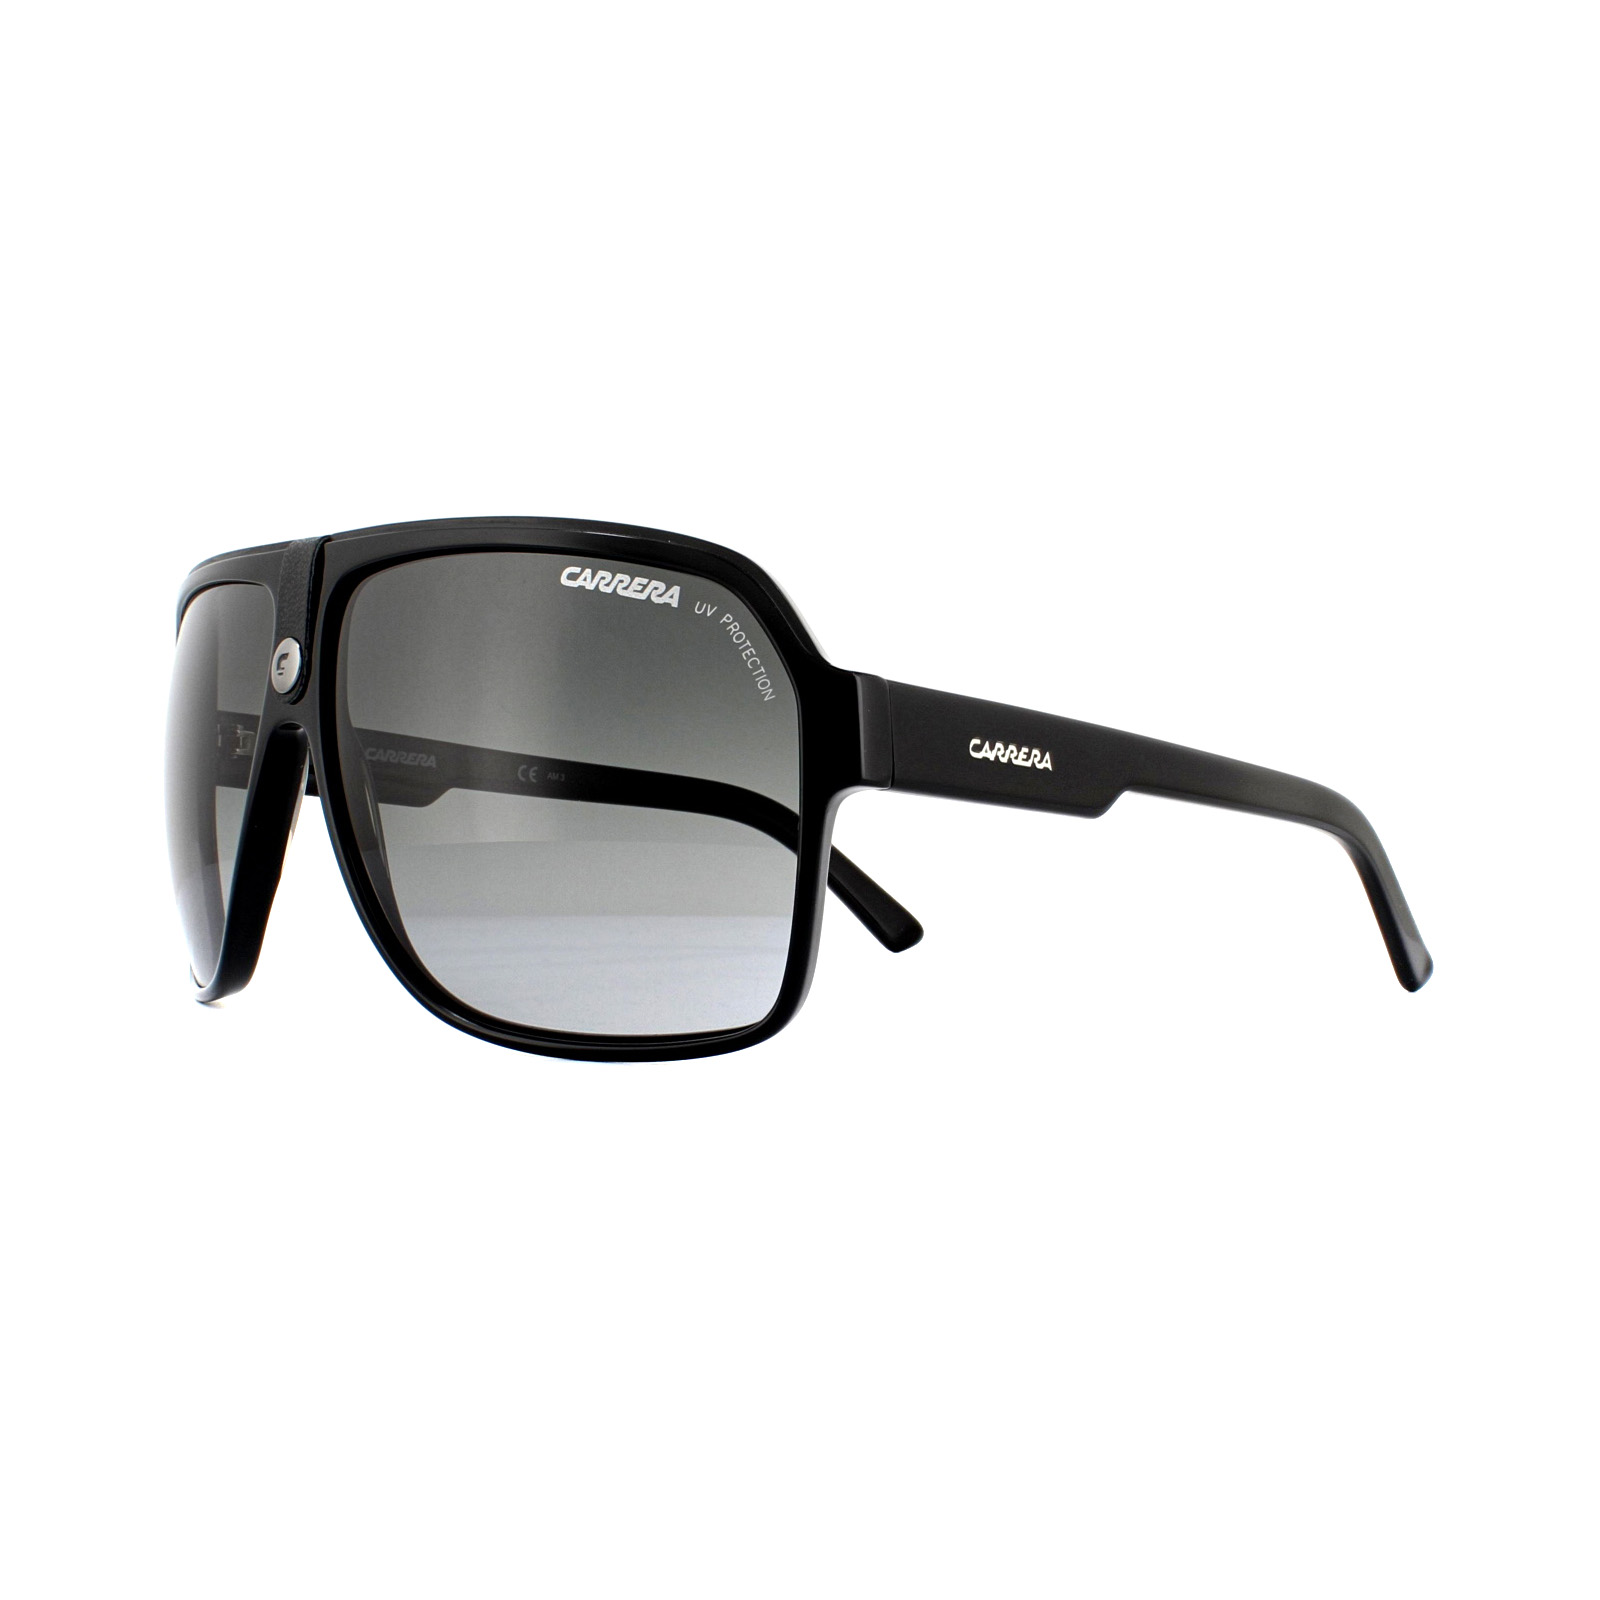 90b49e9a0fc0 Sentinel Carrera Sunglasses Carrera 33 807 PT Black Grey Gradient